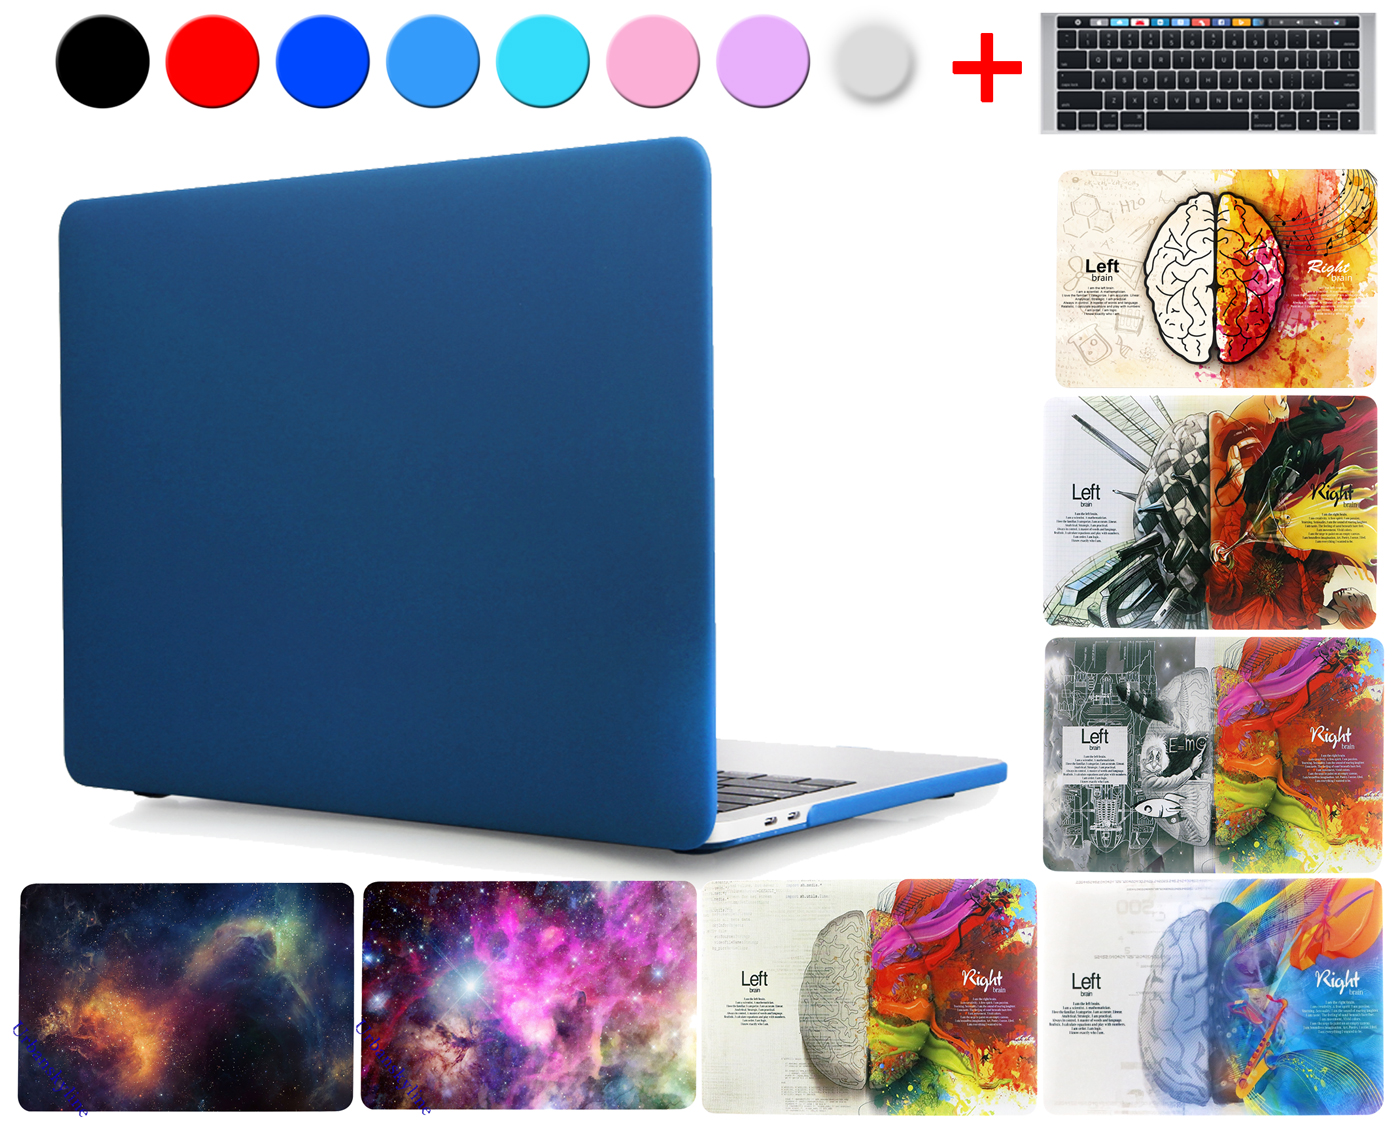 Laptop  Tablet Accessories Store Case for Macbook Pro 13 A1706 Touch Bar A1708 2016 Air 11 12  Pro 13 15 Retina  Matte Hard Crystal Laptop Bag Cover Color Shell